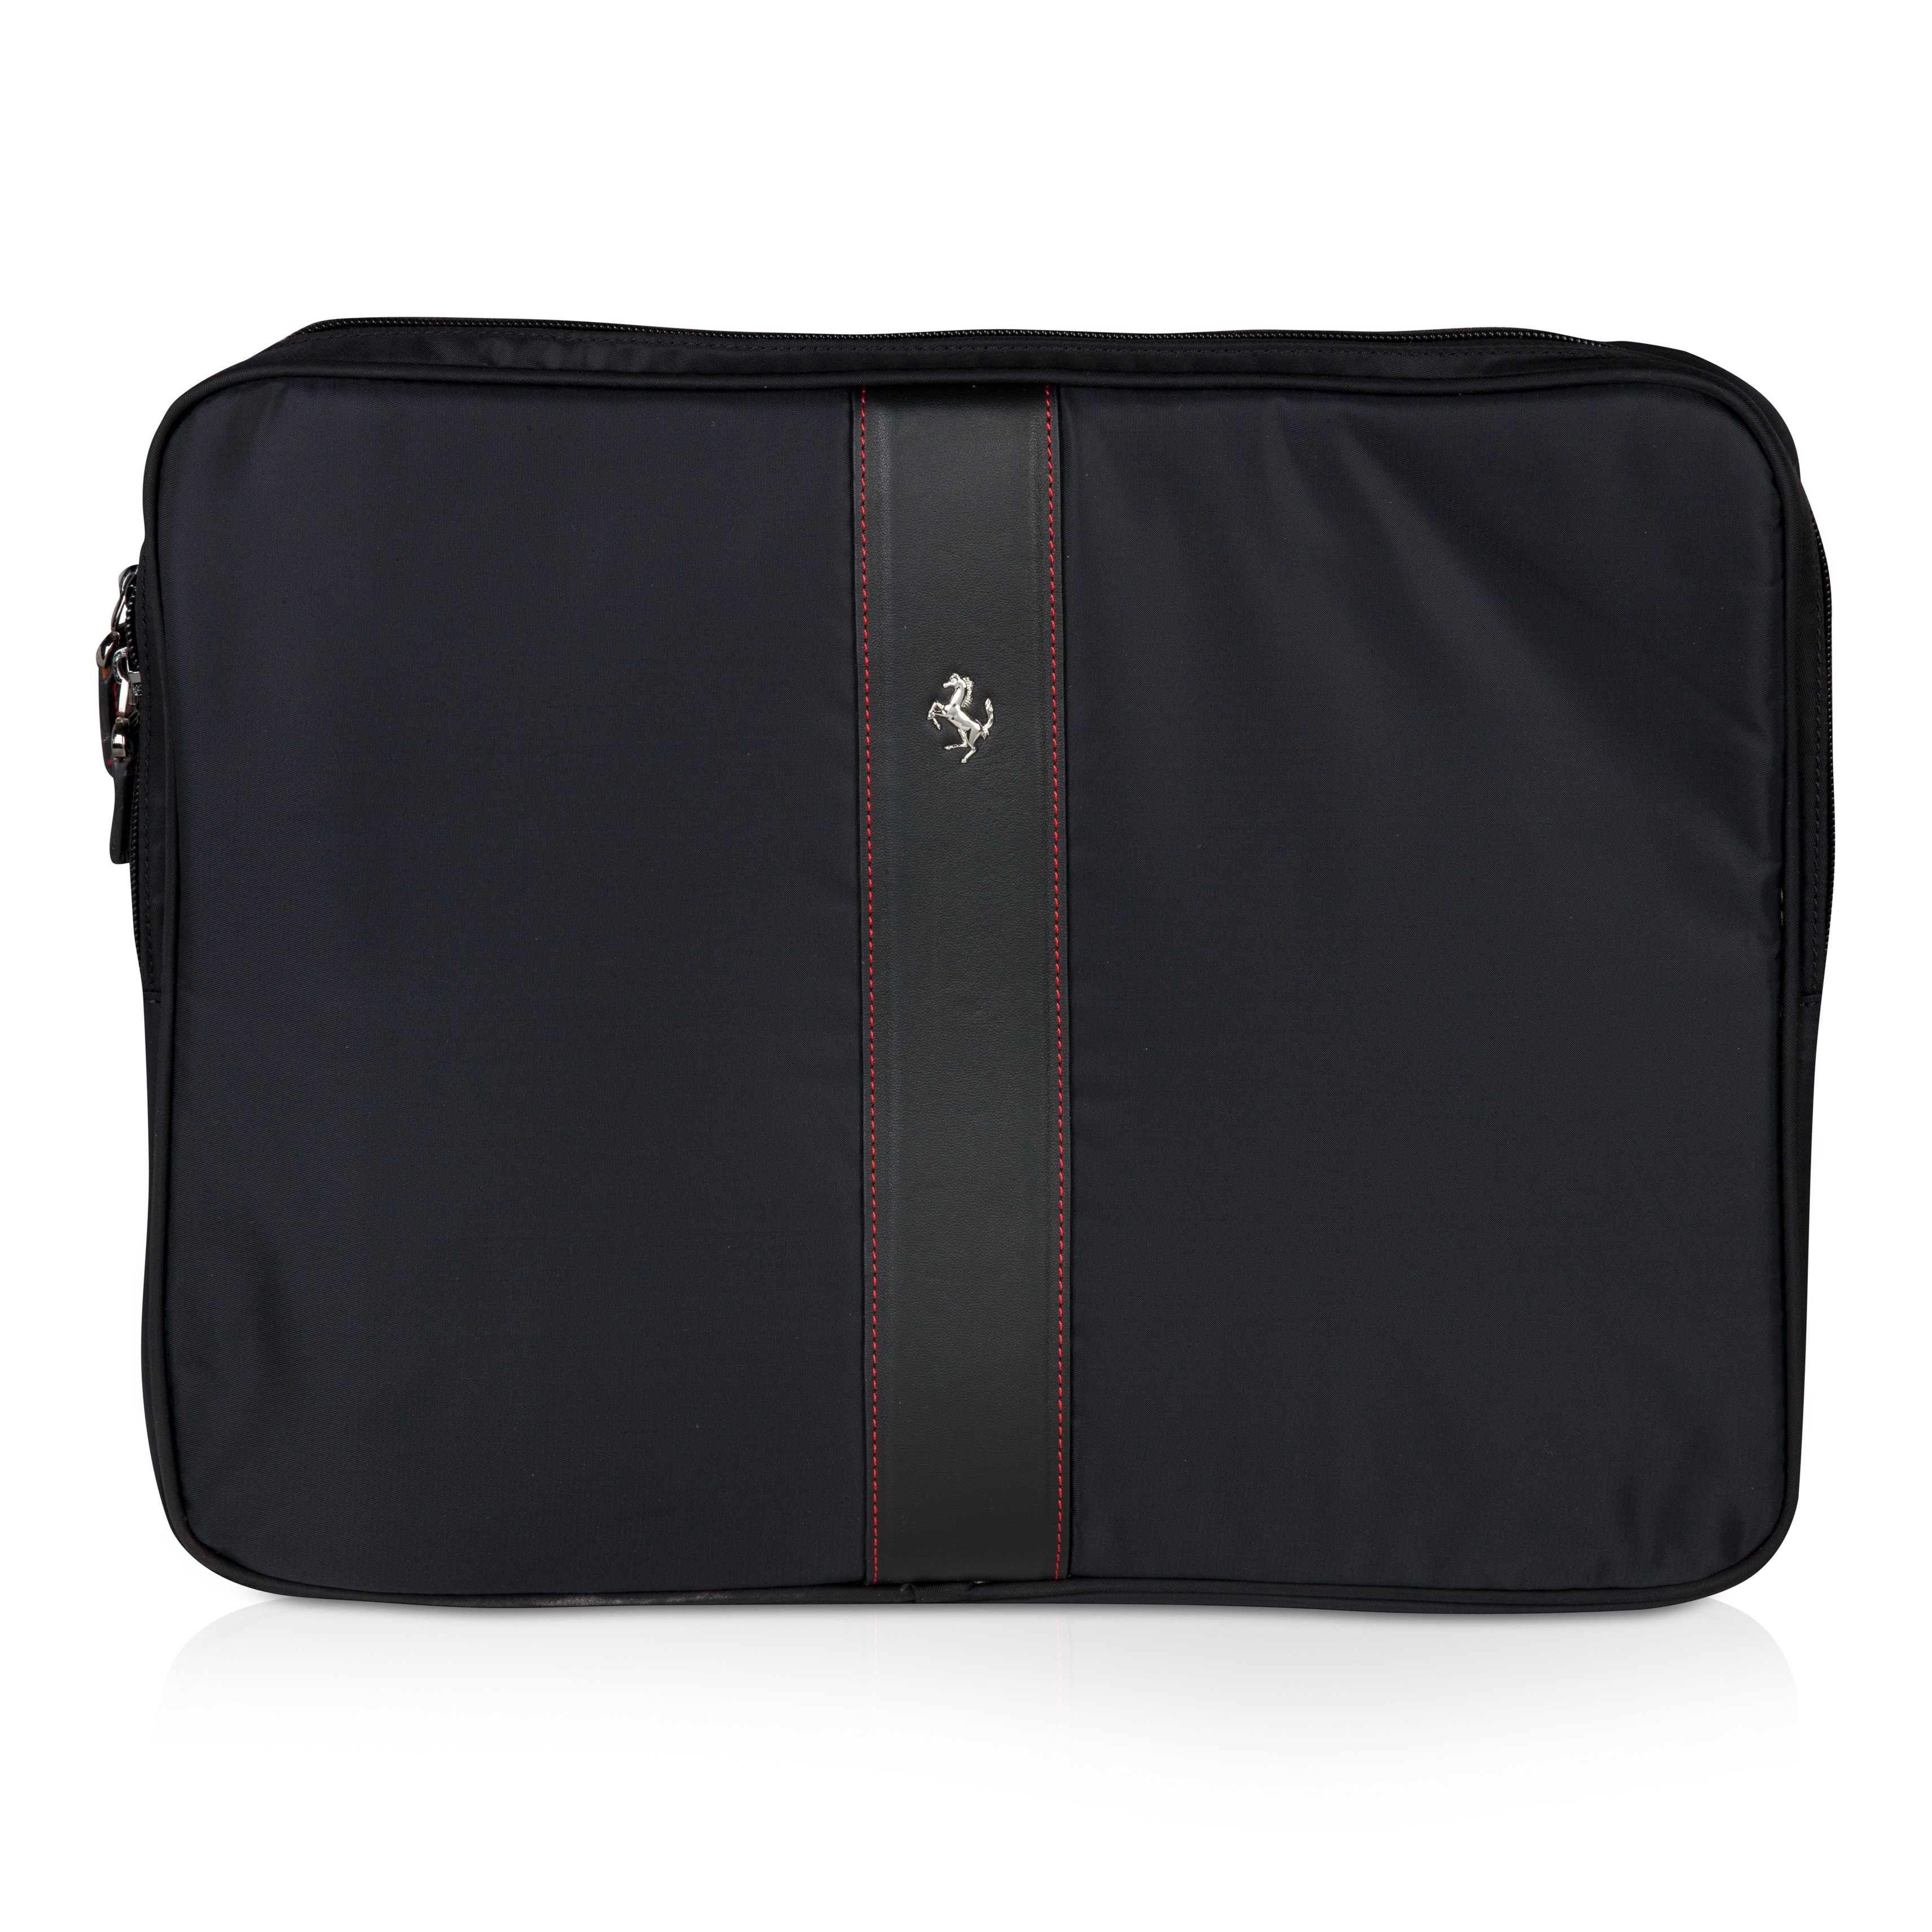 Scuderia Ferrari Laptop Sleeve - Black